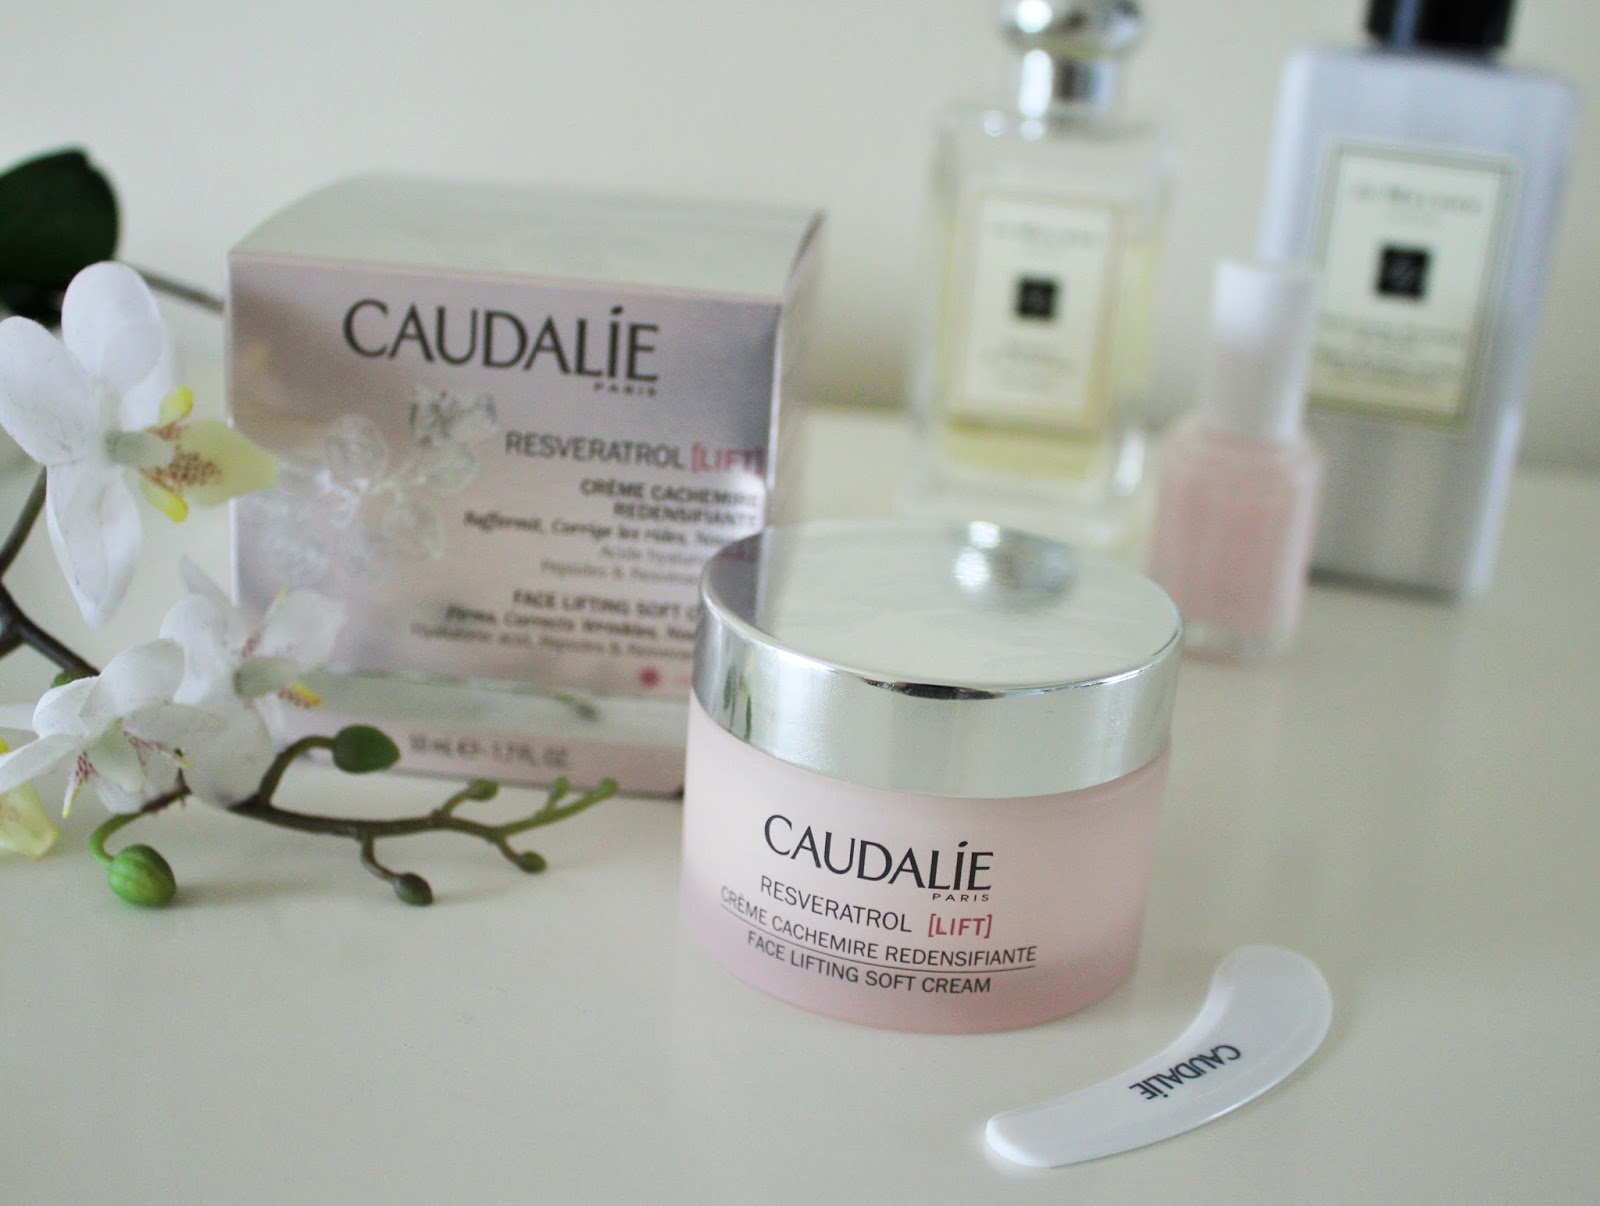 Caudalie Resveratrol Lift Face Lifting Soft Cream Review 2